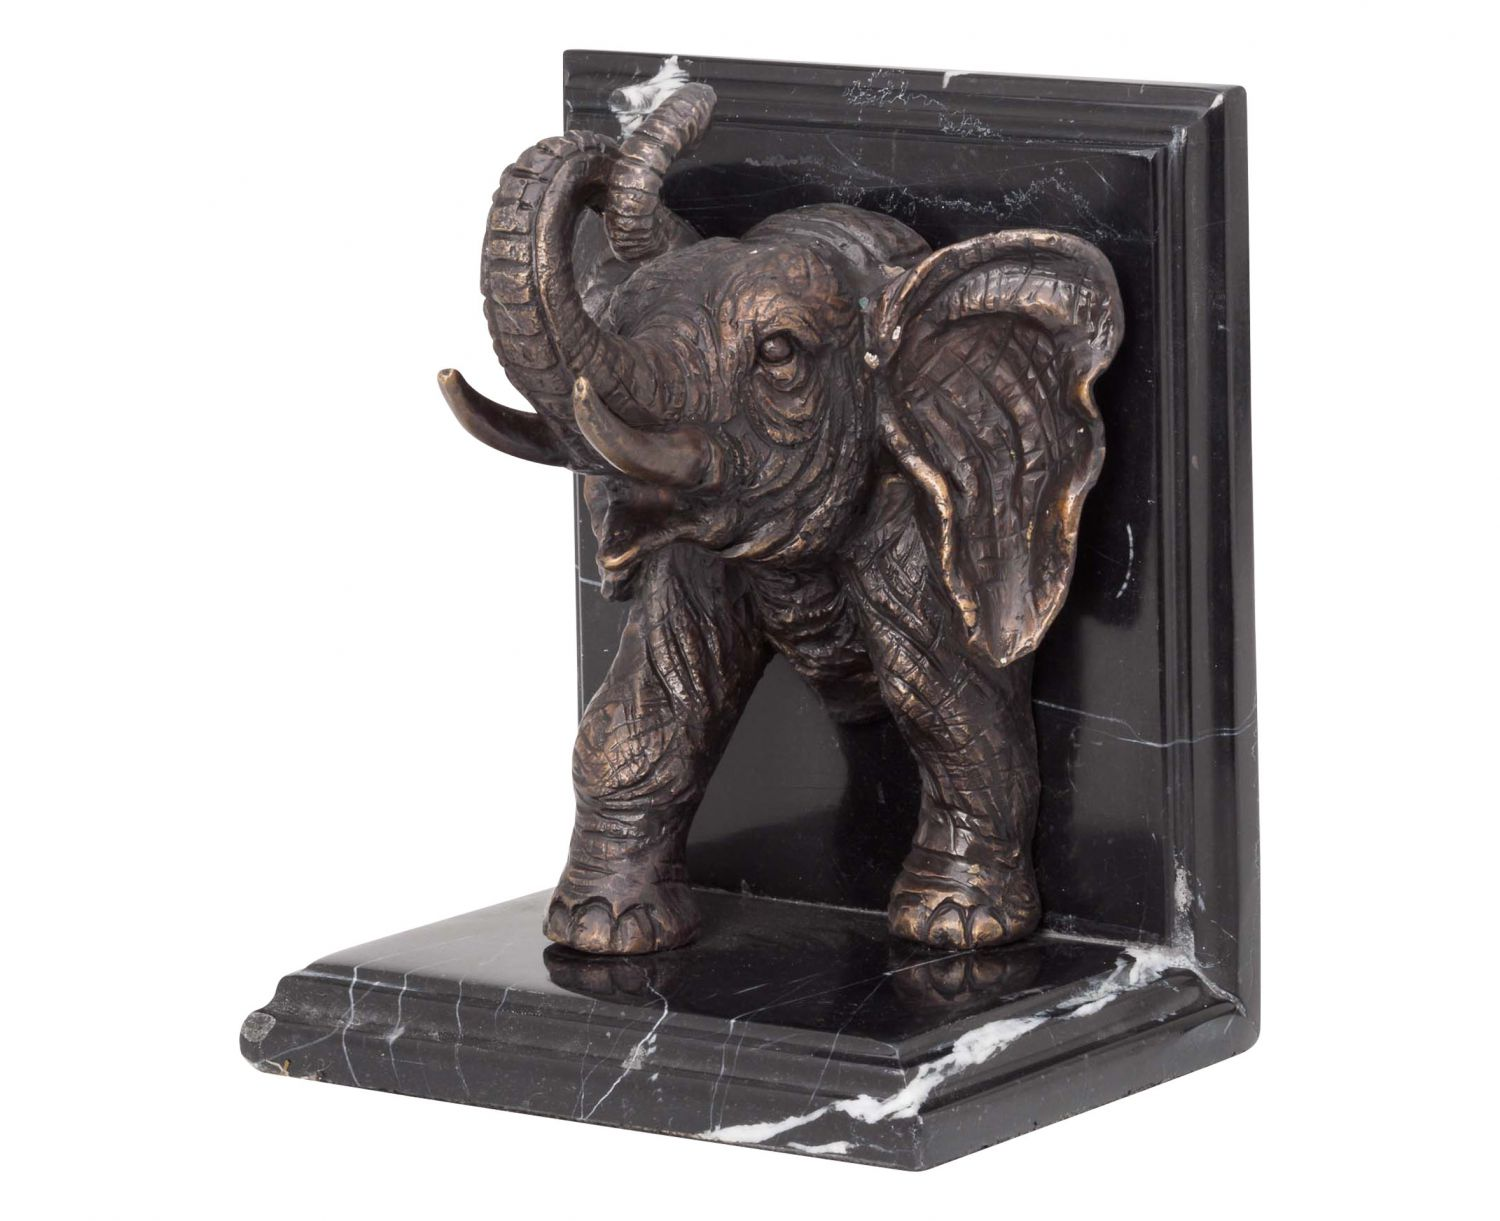 2 bookends bronze sculpture figurine elephant bronze figurine book bookend bronze ebay. Black Bedroom Furniture Sets. Home Design Ideas